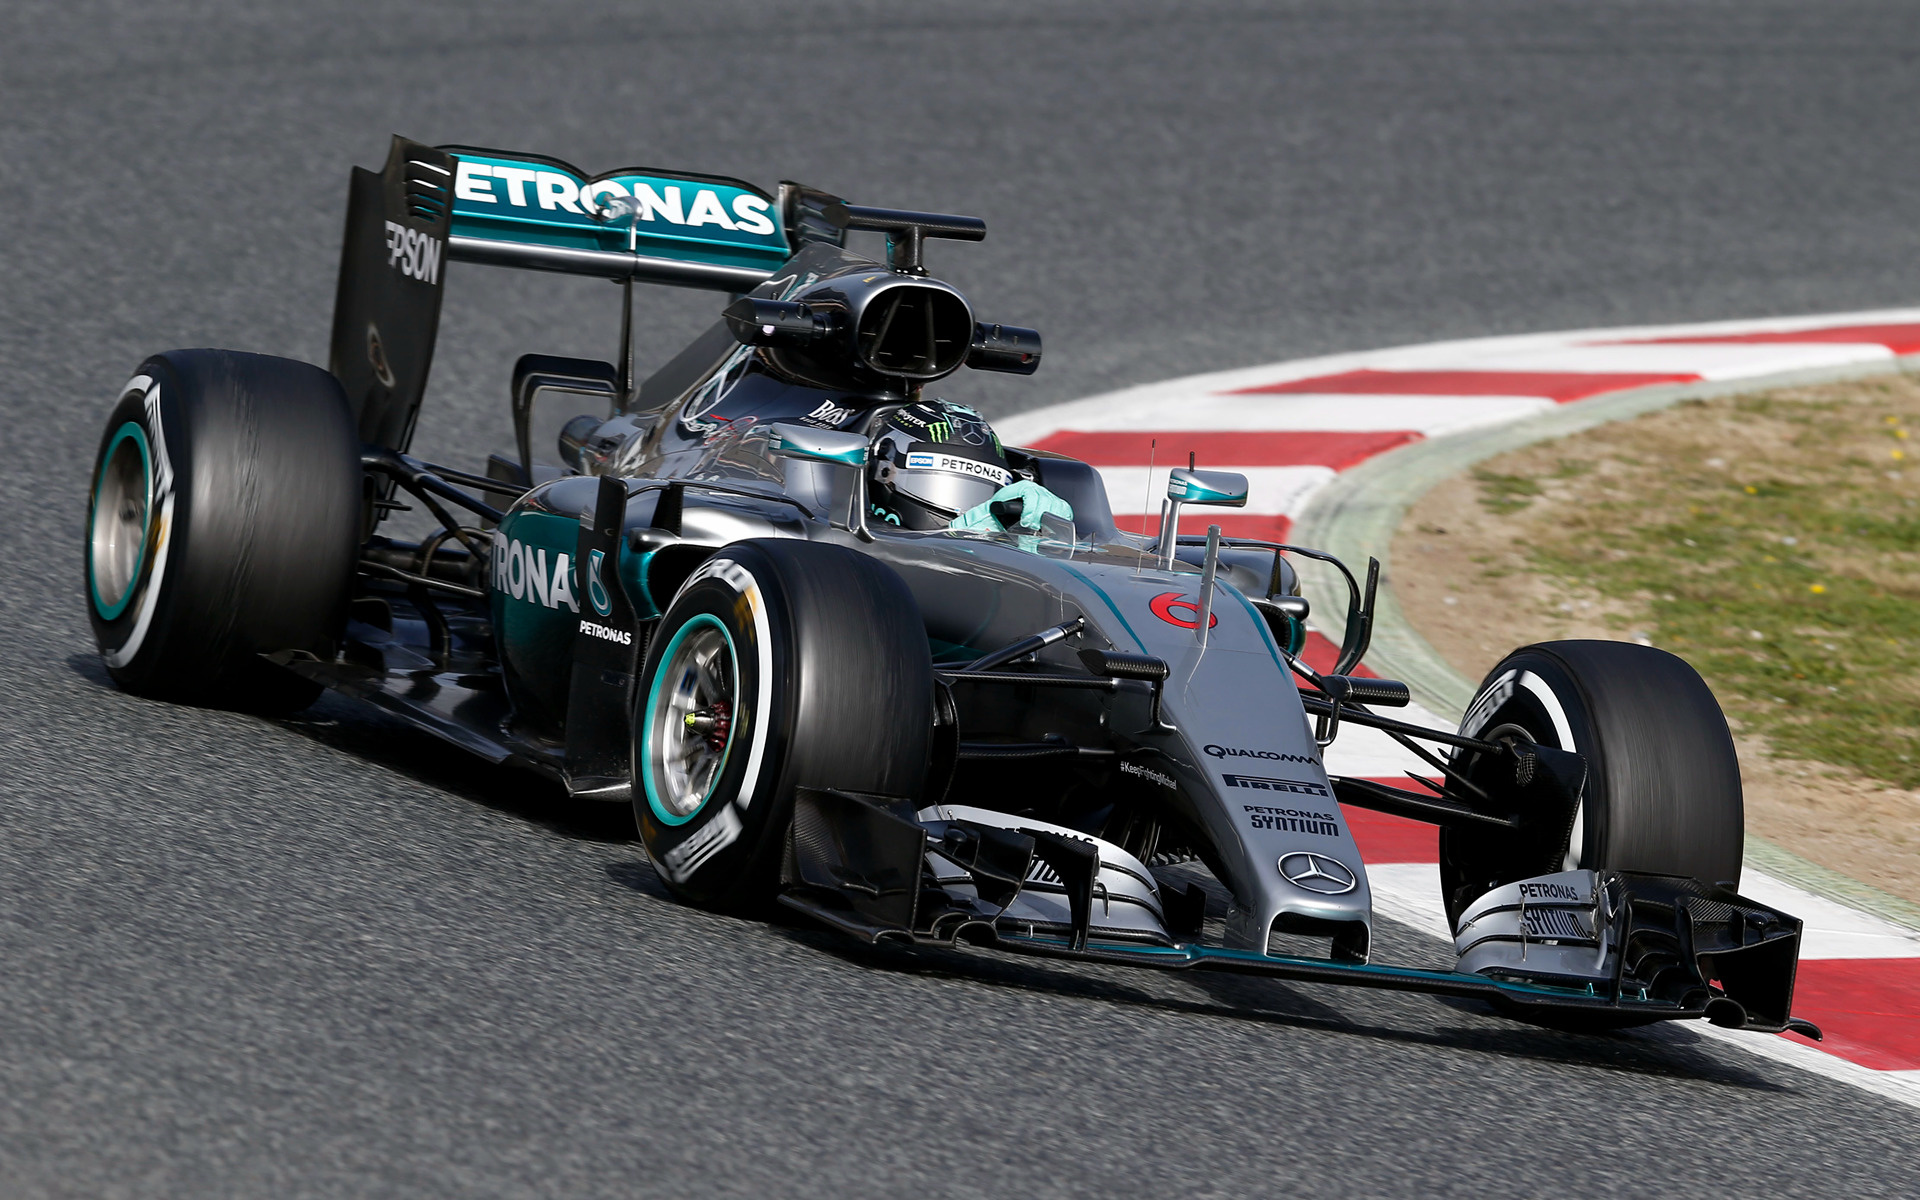 Mercedes-AMG F1 W07 Hybrid (2016) Wallpapers and HD Images ...